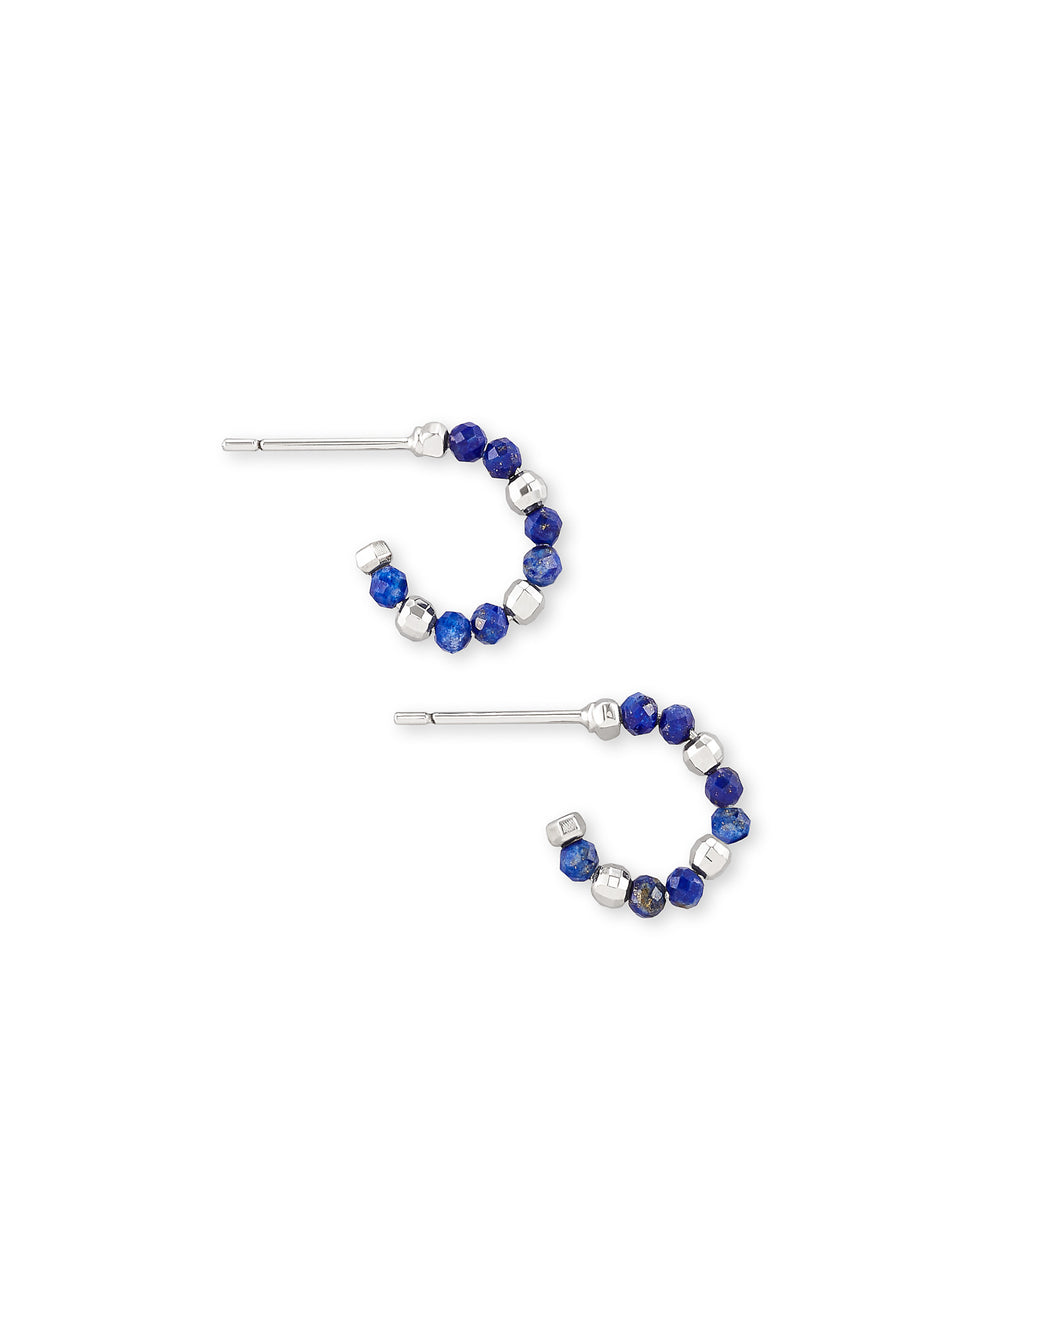 Scarlet Silver Huggie Earrings- Blue Lapis